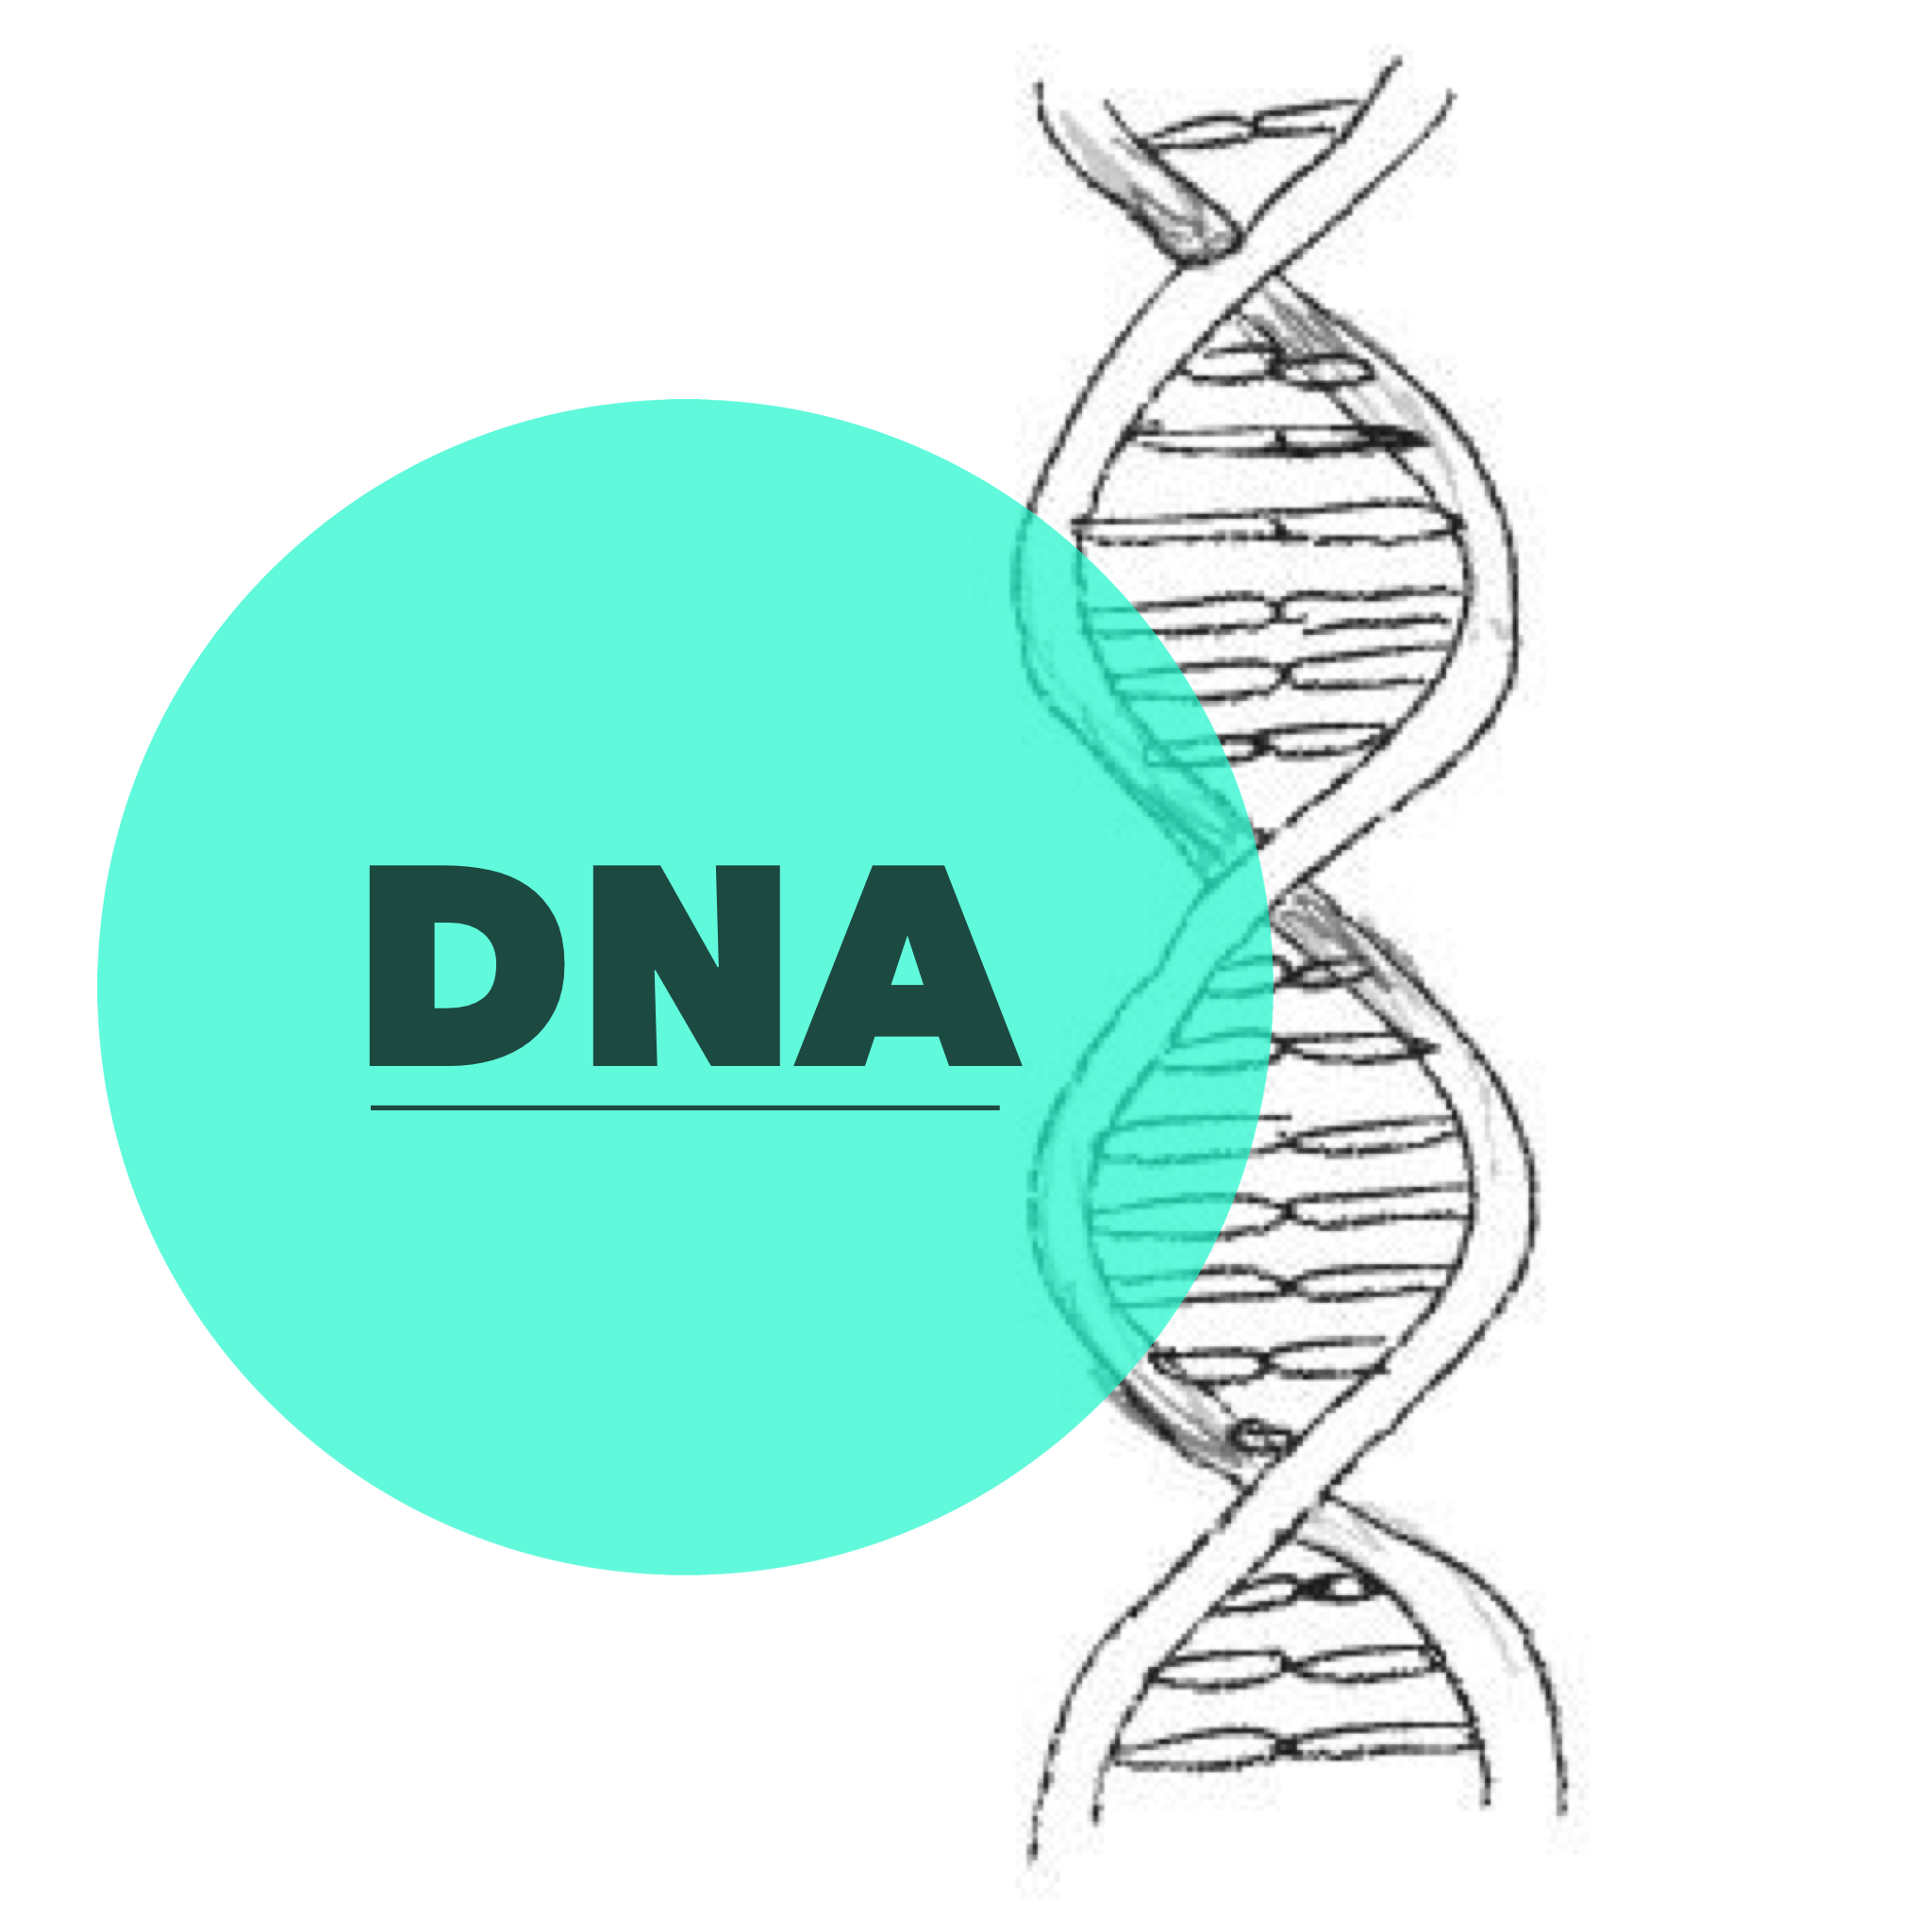 Nice Choice for Logo Dna Images